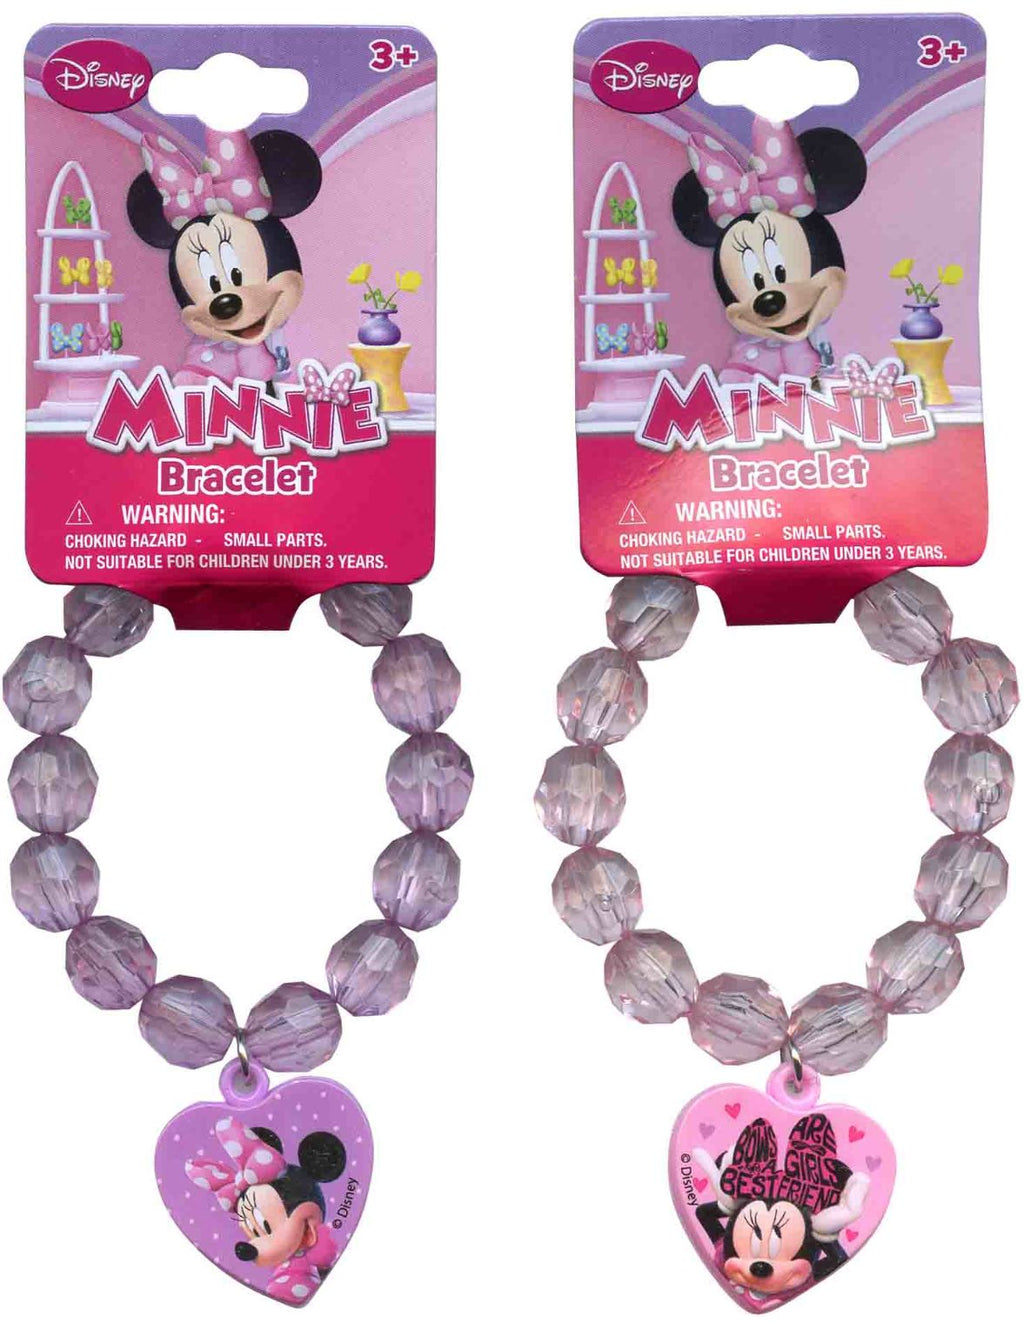 Minnie Beaded Bracelet with Plastic Charm - Assorted - CASE OF 288